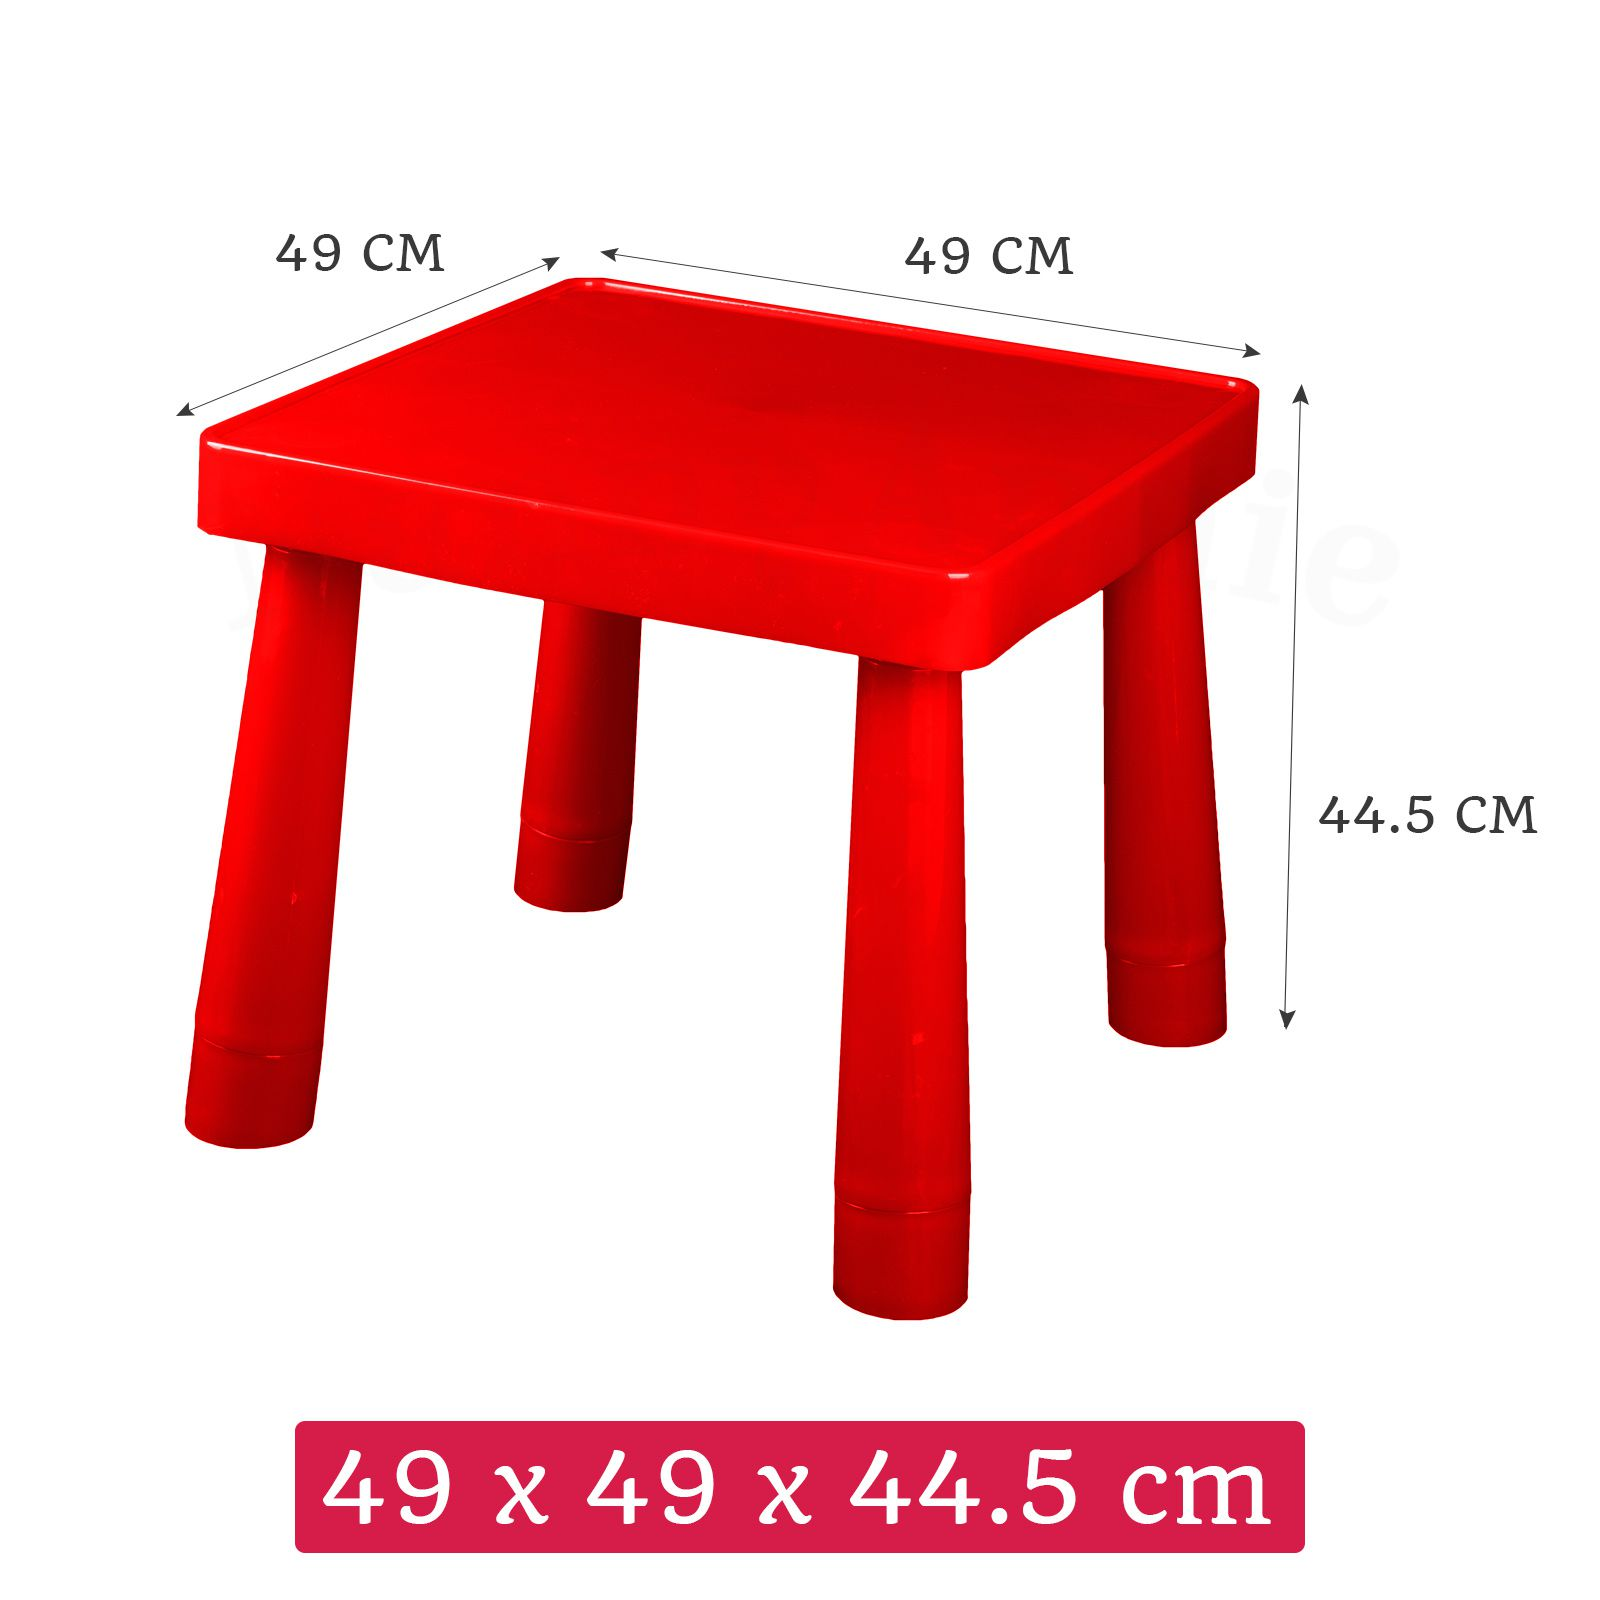 toddler table and chair set south africa vintage aluminum folding lawn chairs kids play furniture plastic fountain